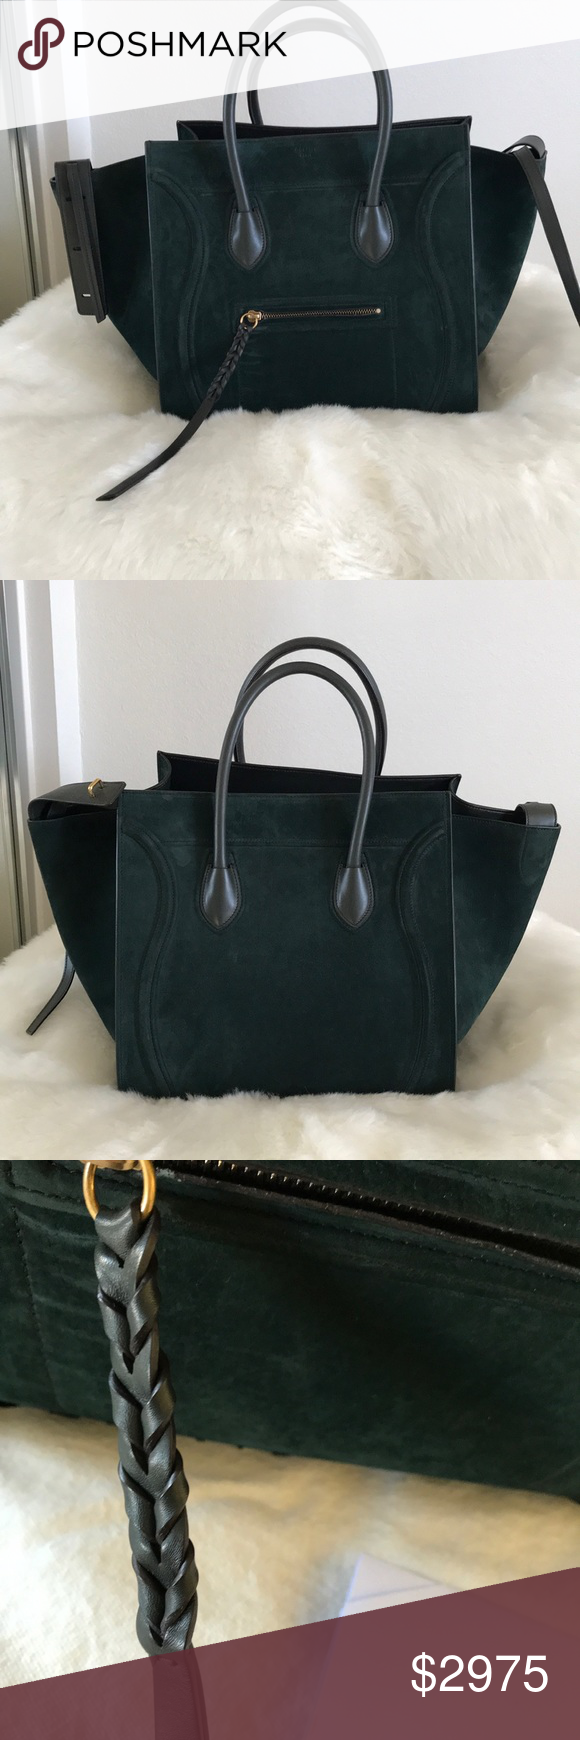 e525930b78 Authentic Celine Phantom in Suede green Authentic Celine handbag in green  suede. This is an amazing neutral bag in a difficult to find color.